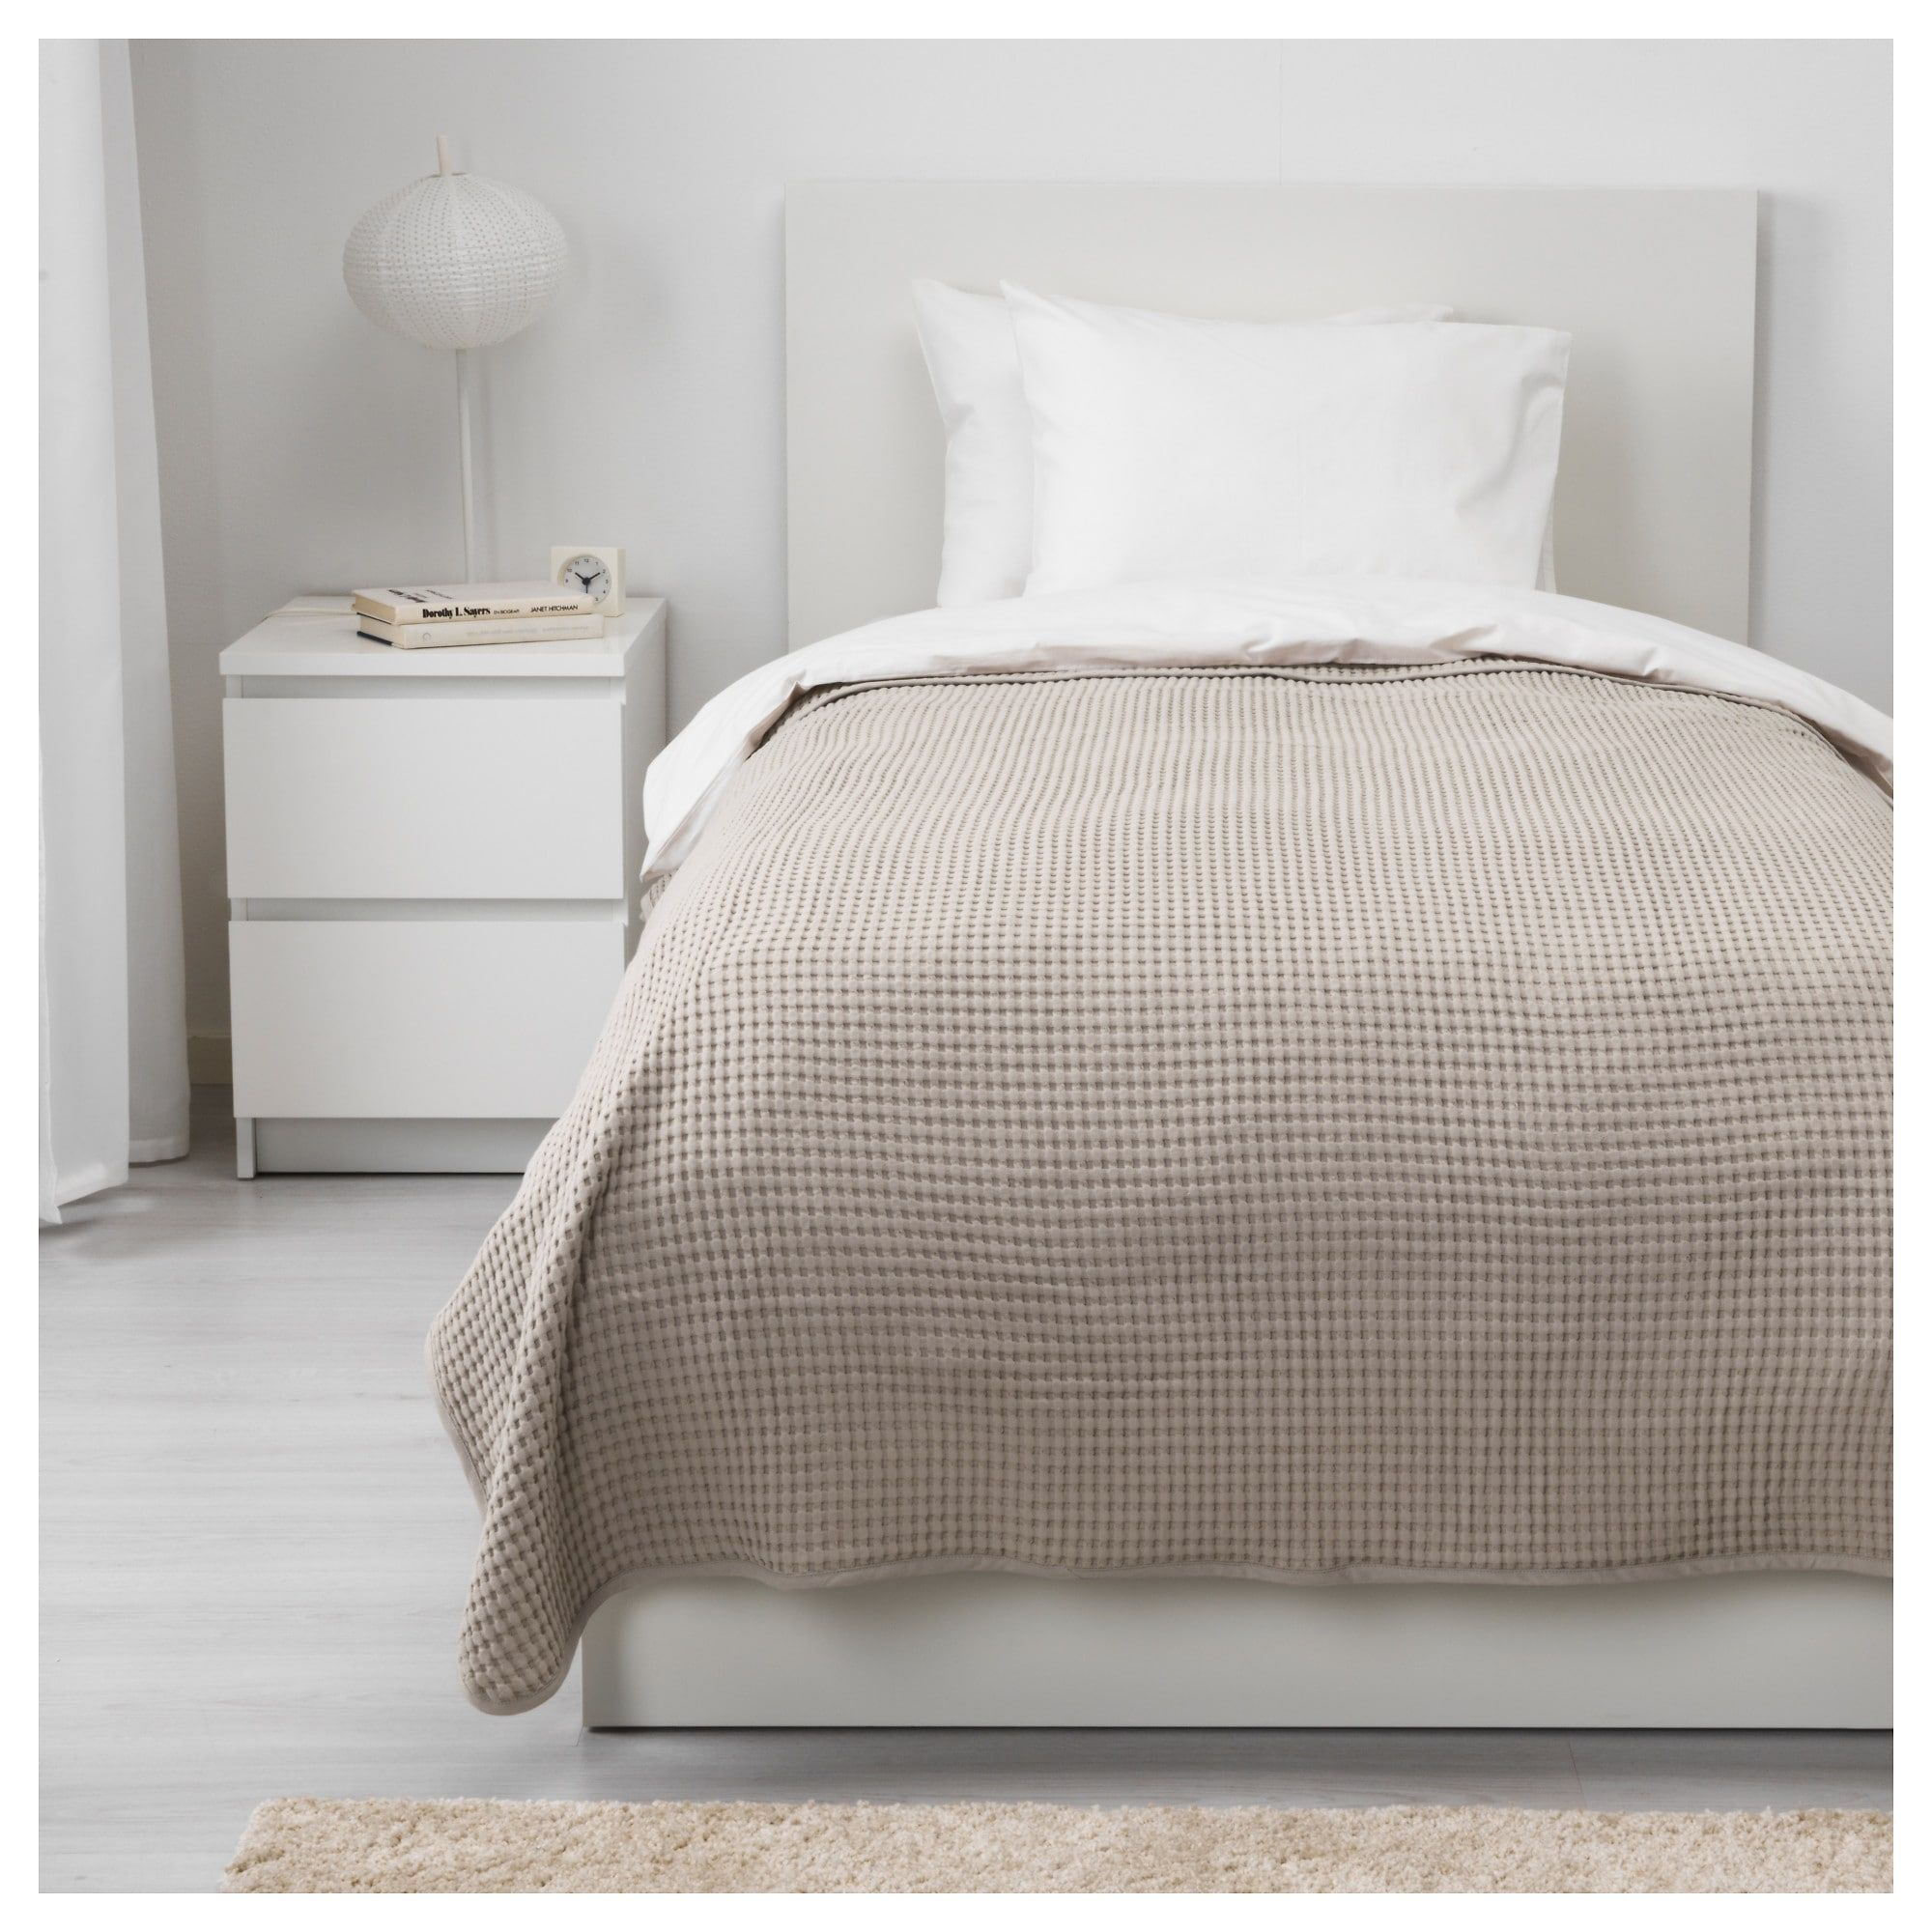 Ikea.at Tagesdecke VÅreld Tagesdecke Beige In 2019 Products Tagesdecke